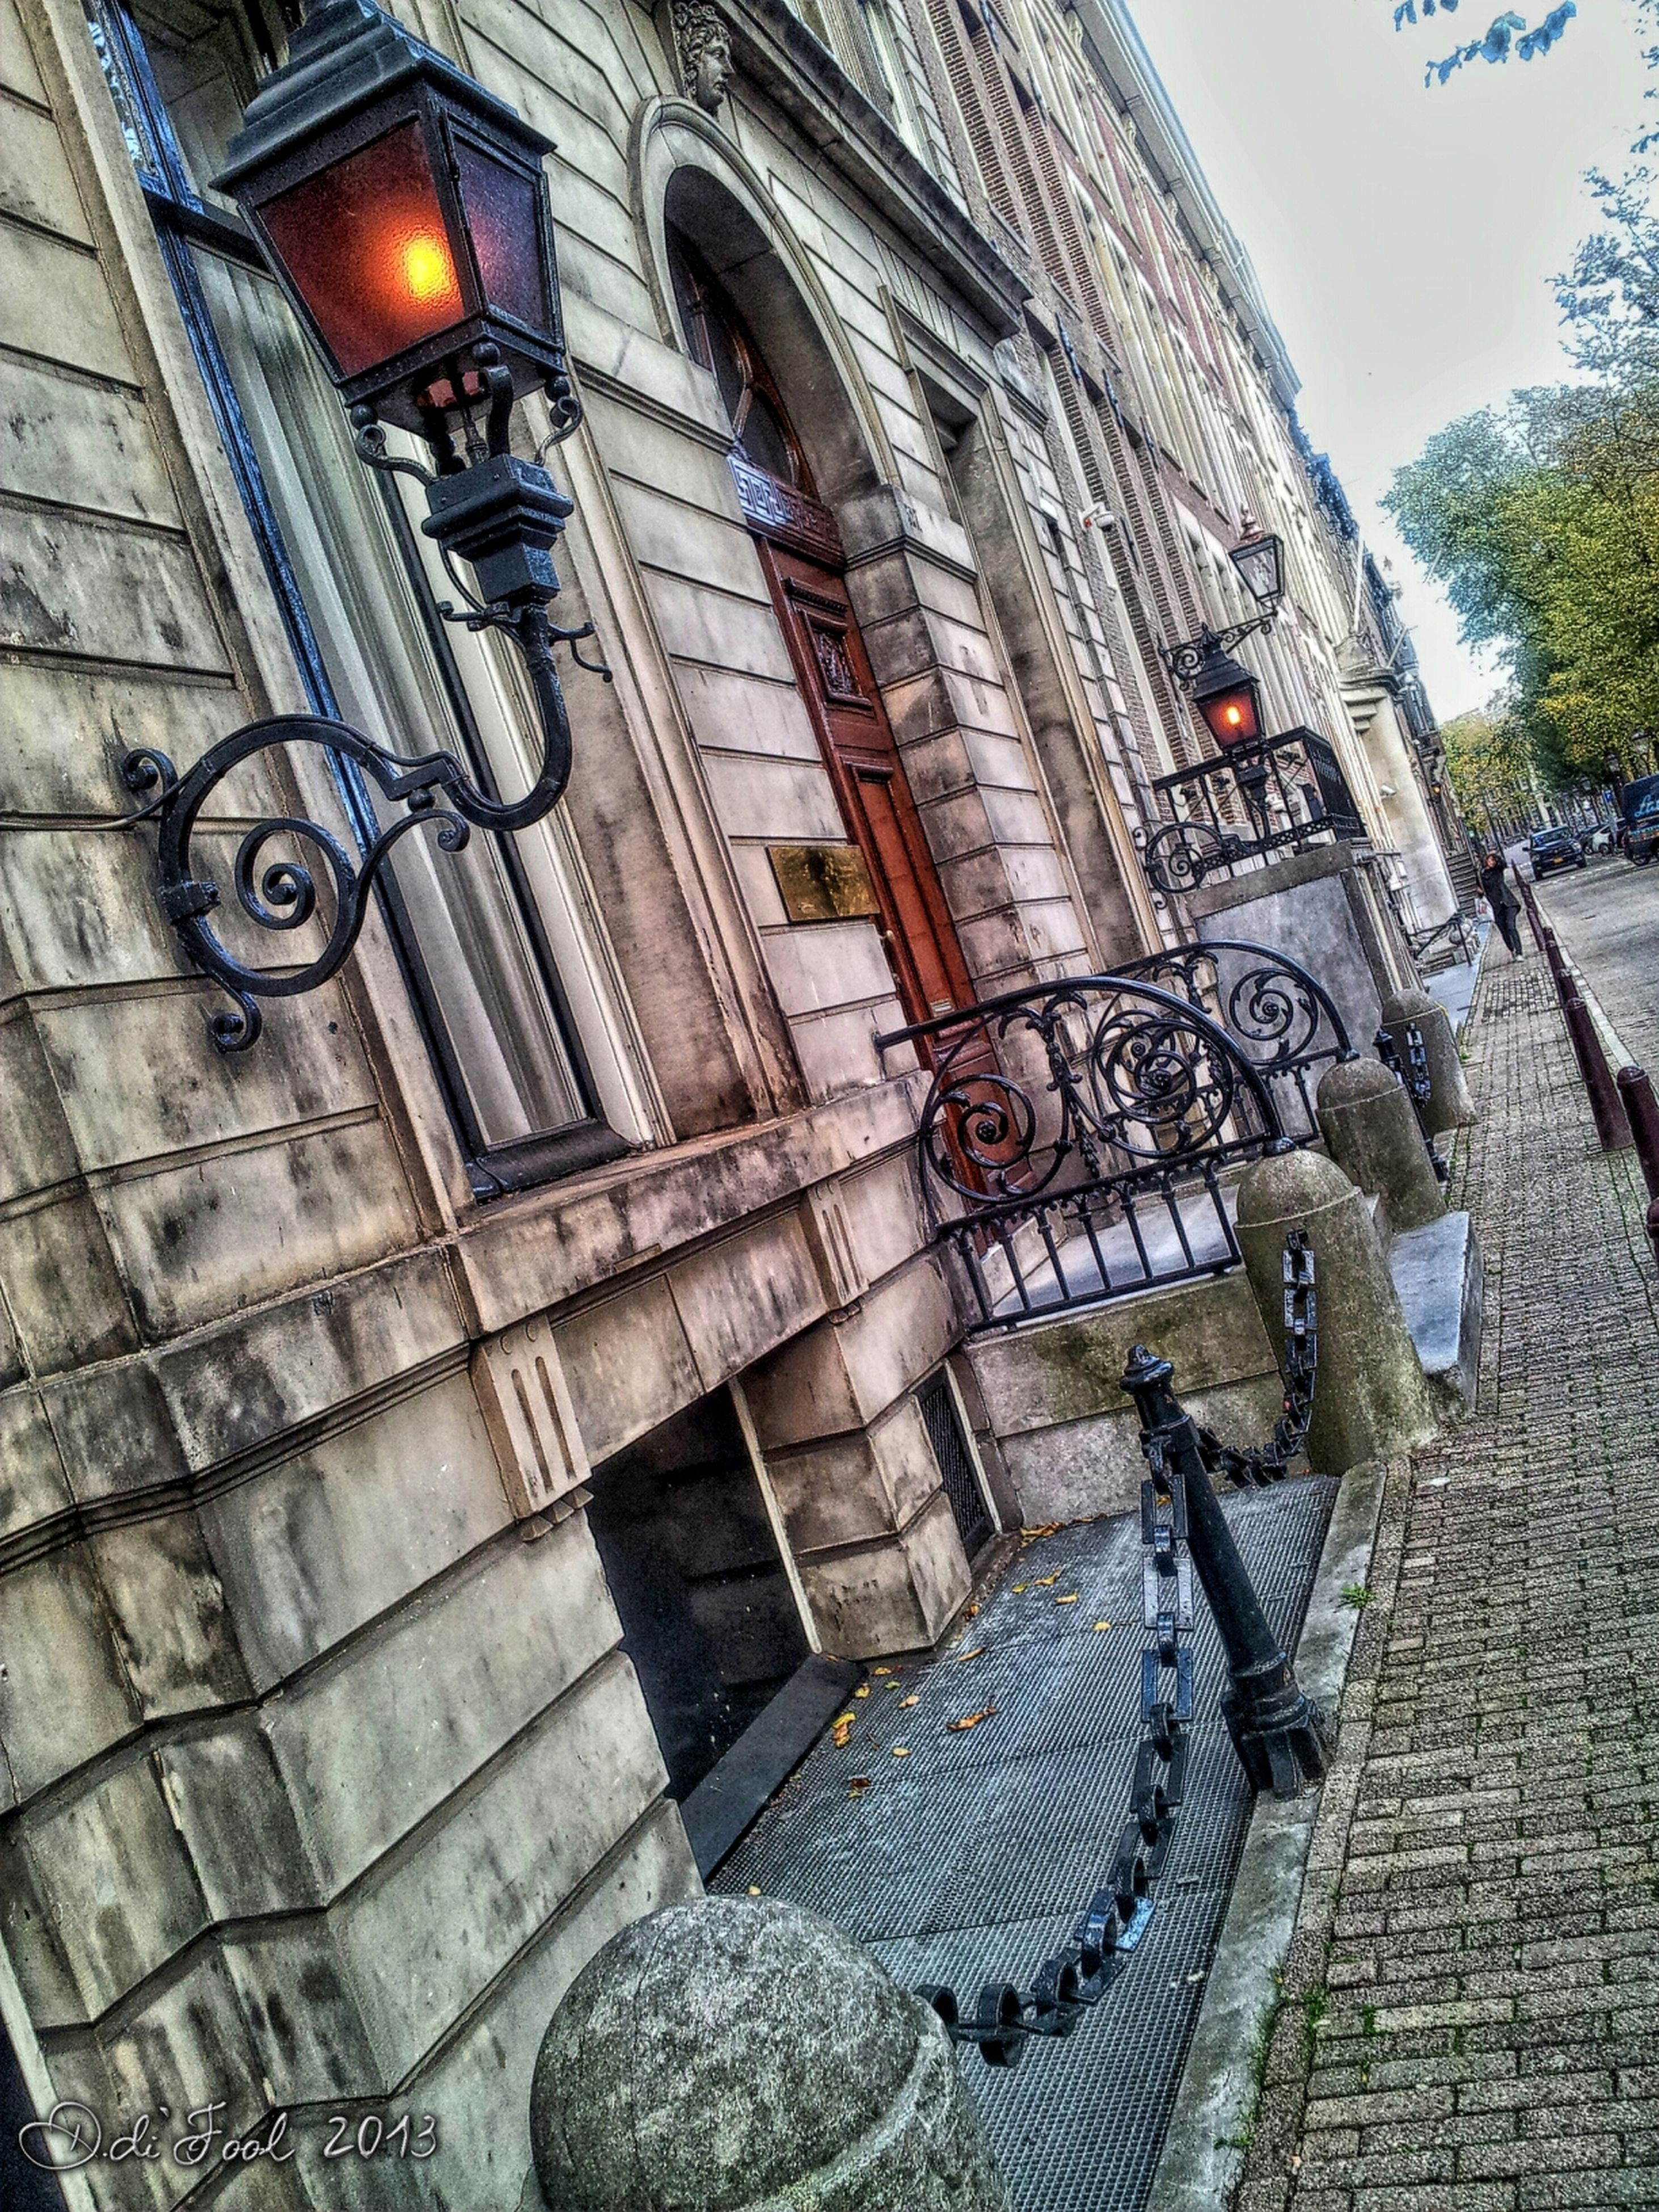 architecture, built structure, building exterior, cobblestone, arch, day, outdoors, street, building, city, sunlight, old, paving stone, no people, sidewalk, railing, footpath, steps, wall - building feature, history